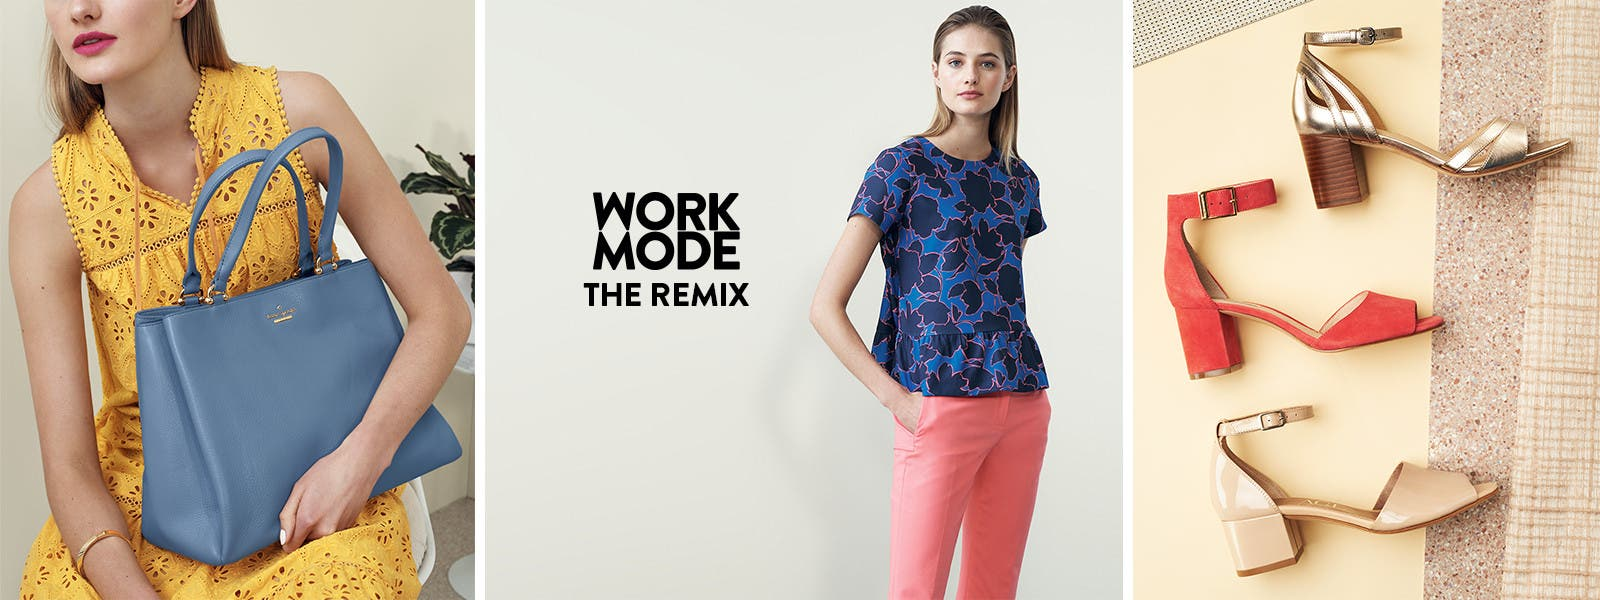 Work mode: the remix.